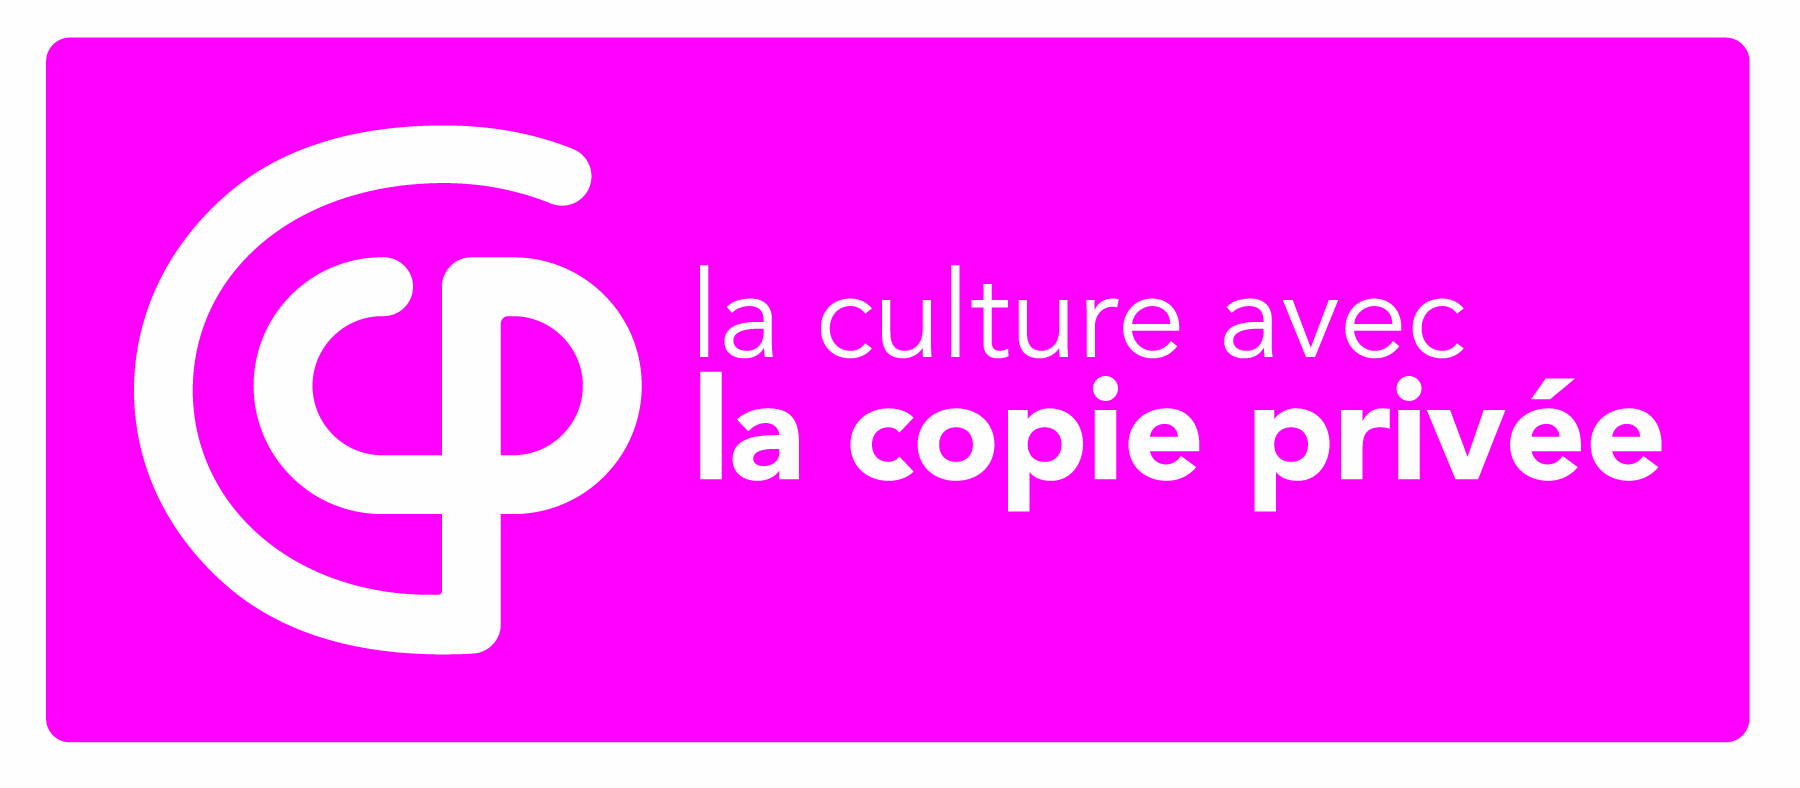 LOGO_COPIE_PRIVEE_CARTOUCHE_ROSE.jpg